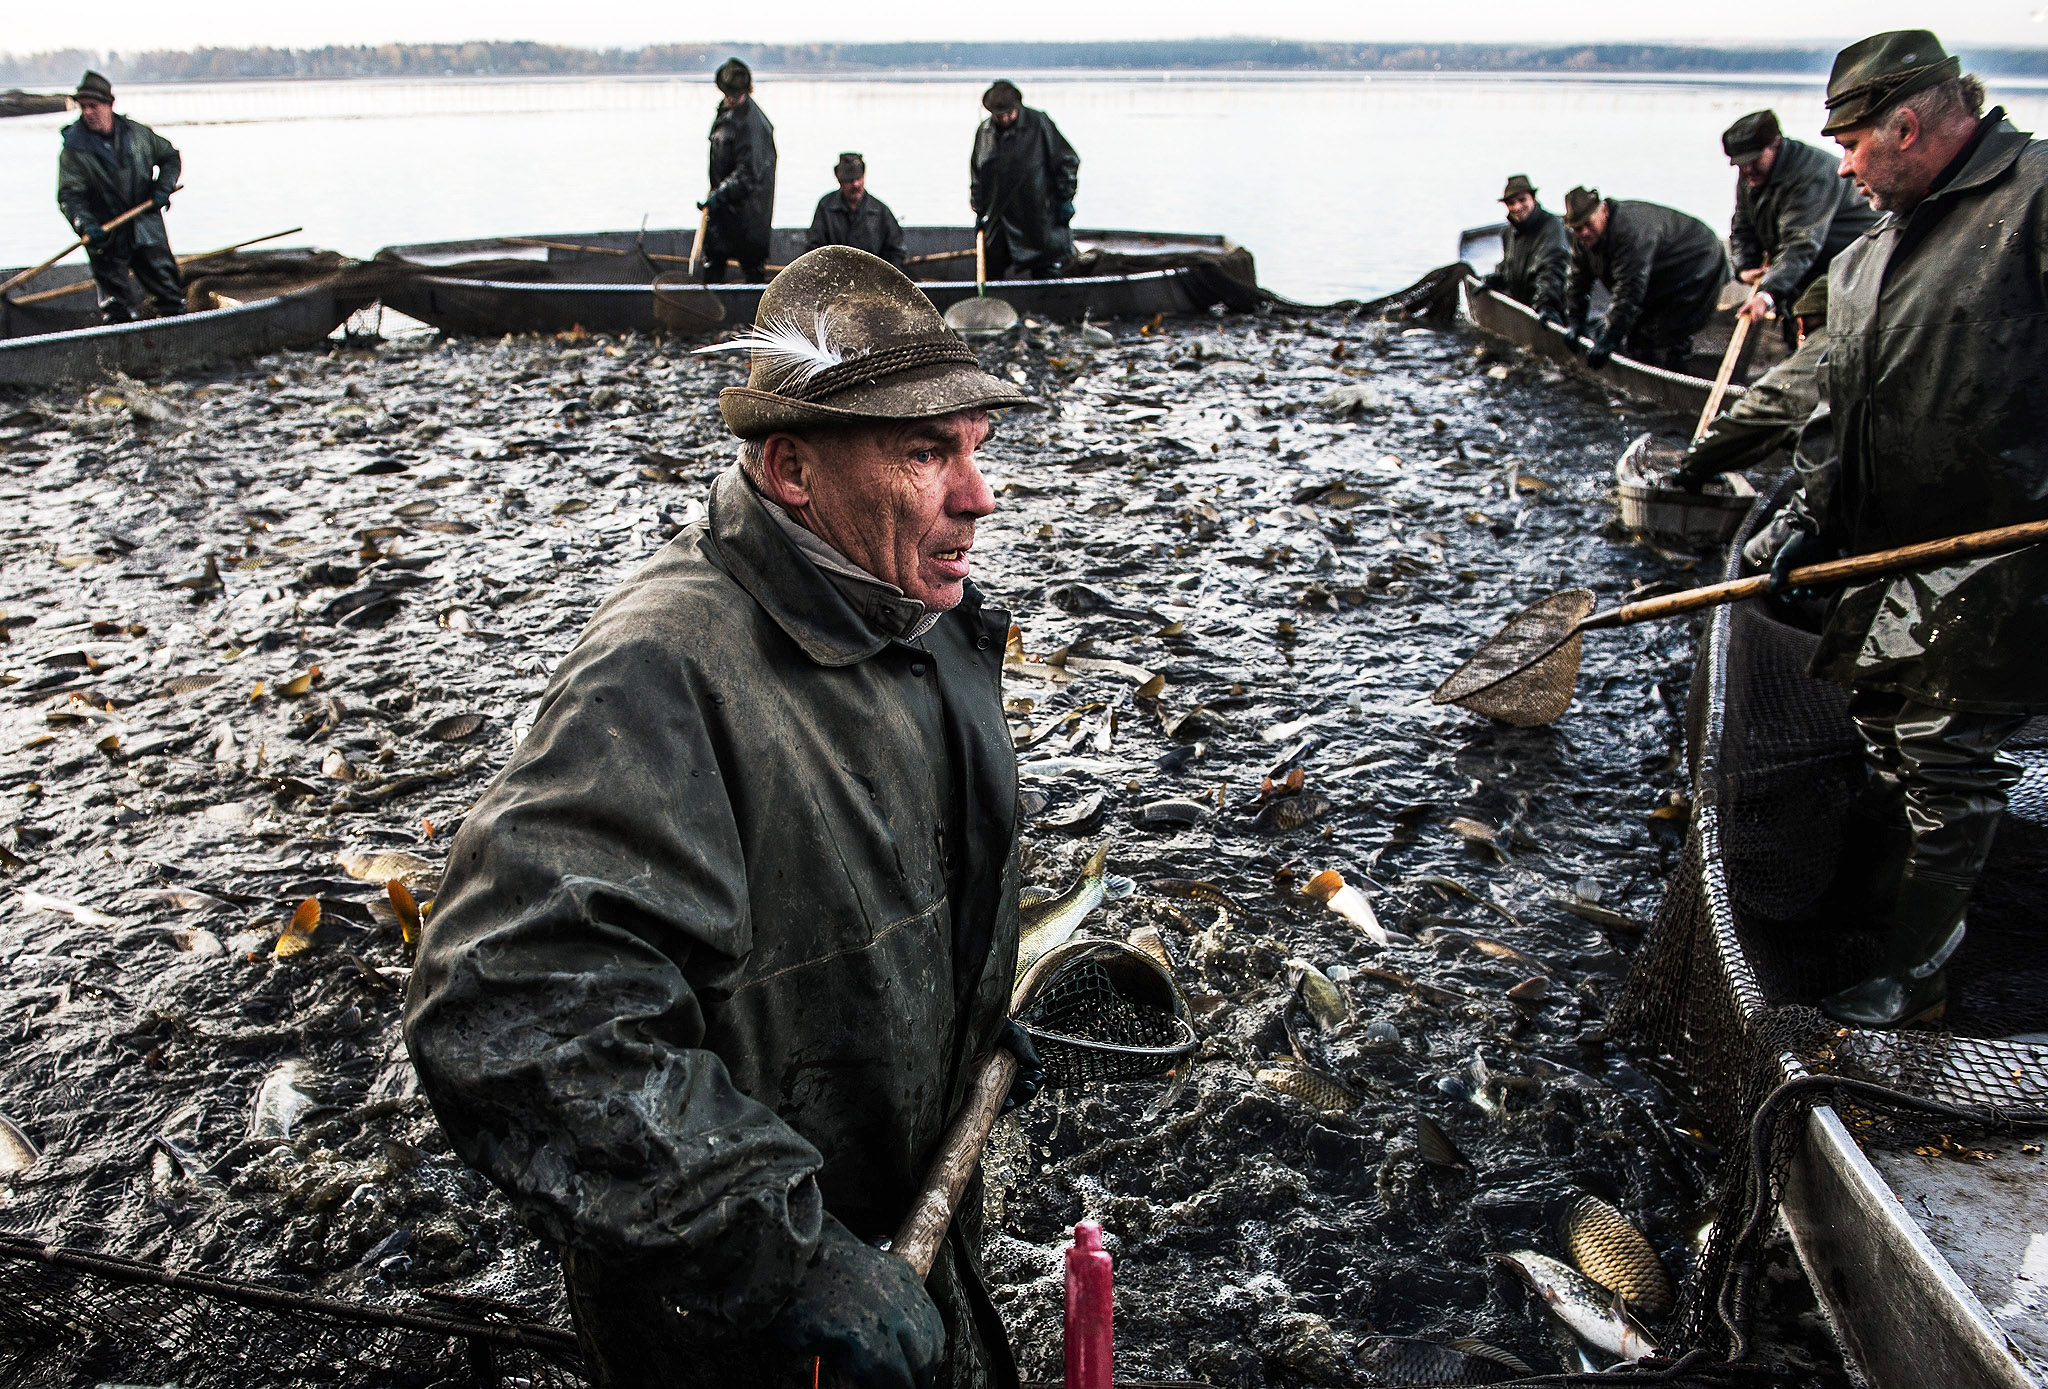 Czech fishermen sort fish during the traditional Carp haul at Lake of Dvoriste near Smrzov village, Czech Republic, on Monday. Carp, the traditional Czech Christmas Eve dinner, is harvested primarly from the region of southern Bohemian lakes